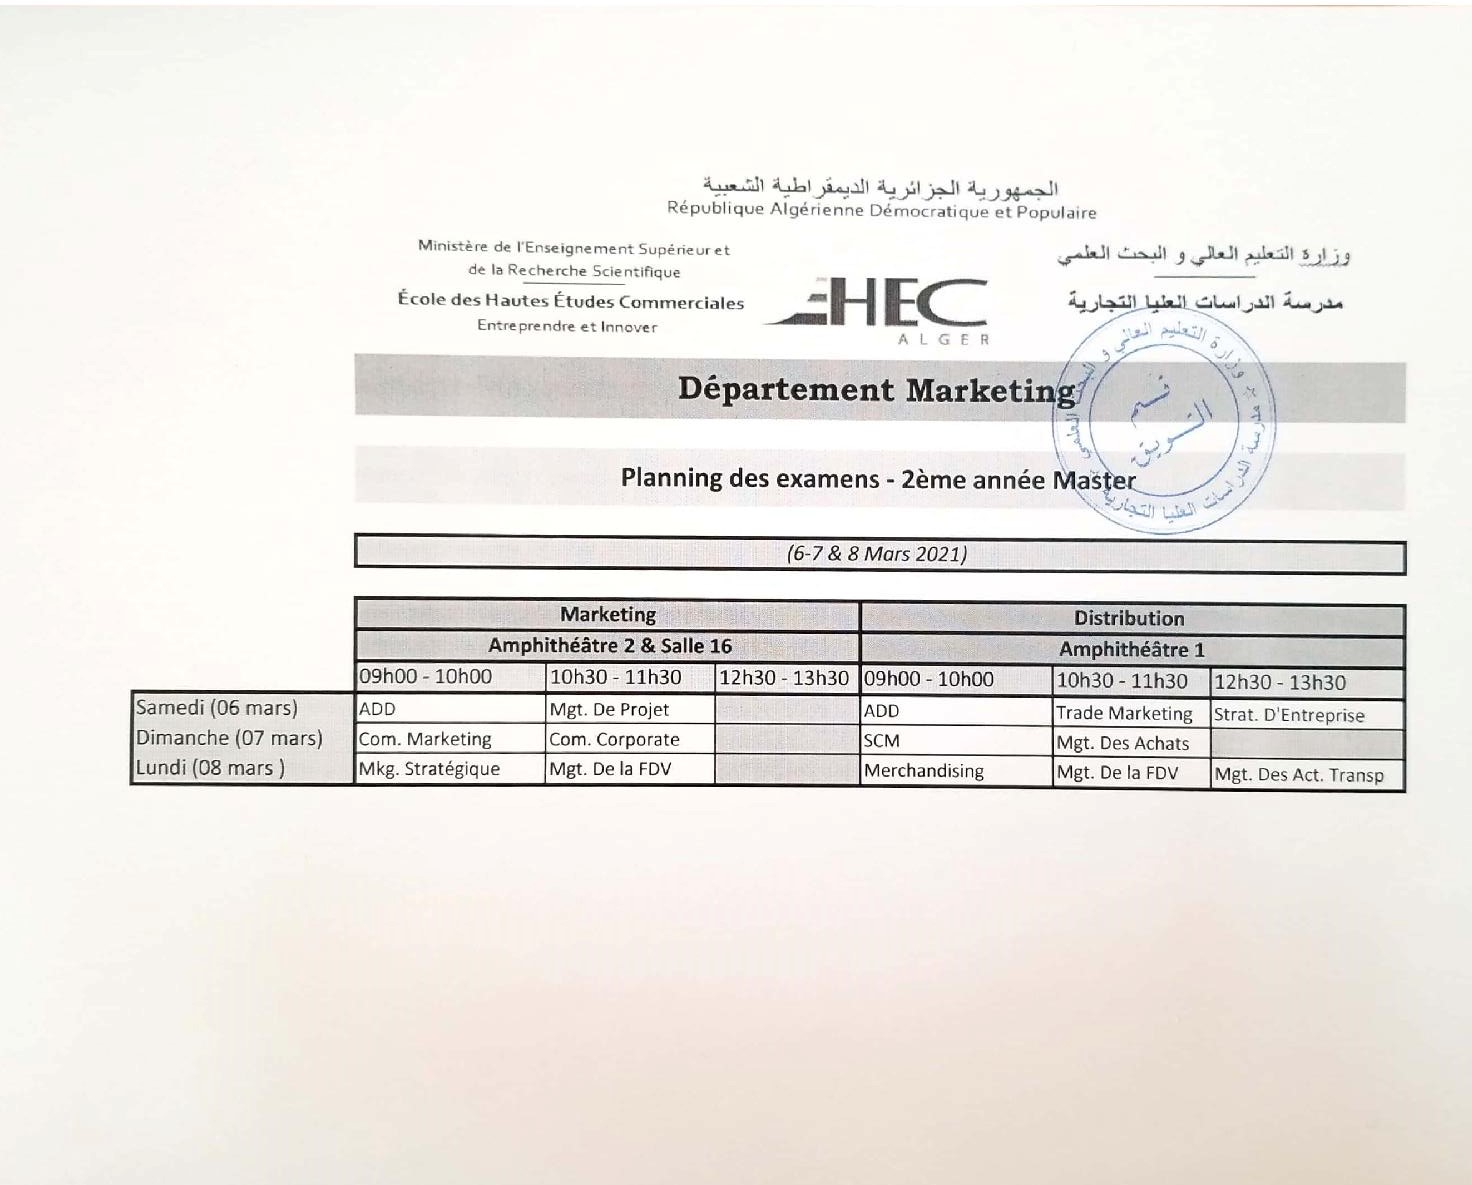 Exam timetable for the 2nd year master cycle students of The department of Marketing S1